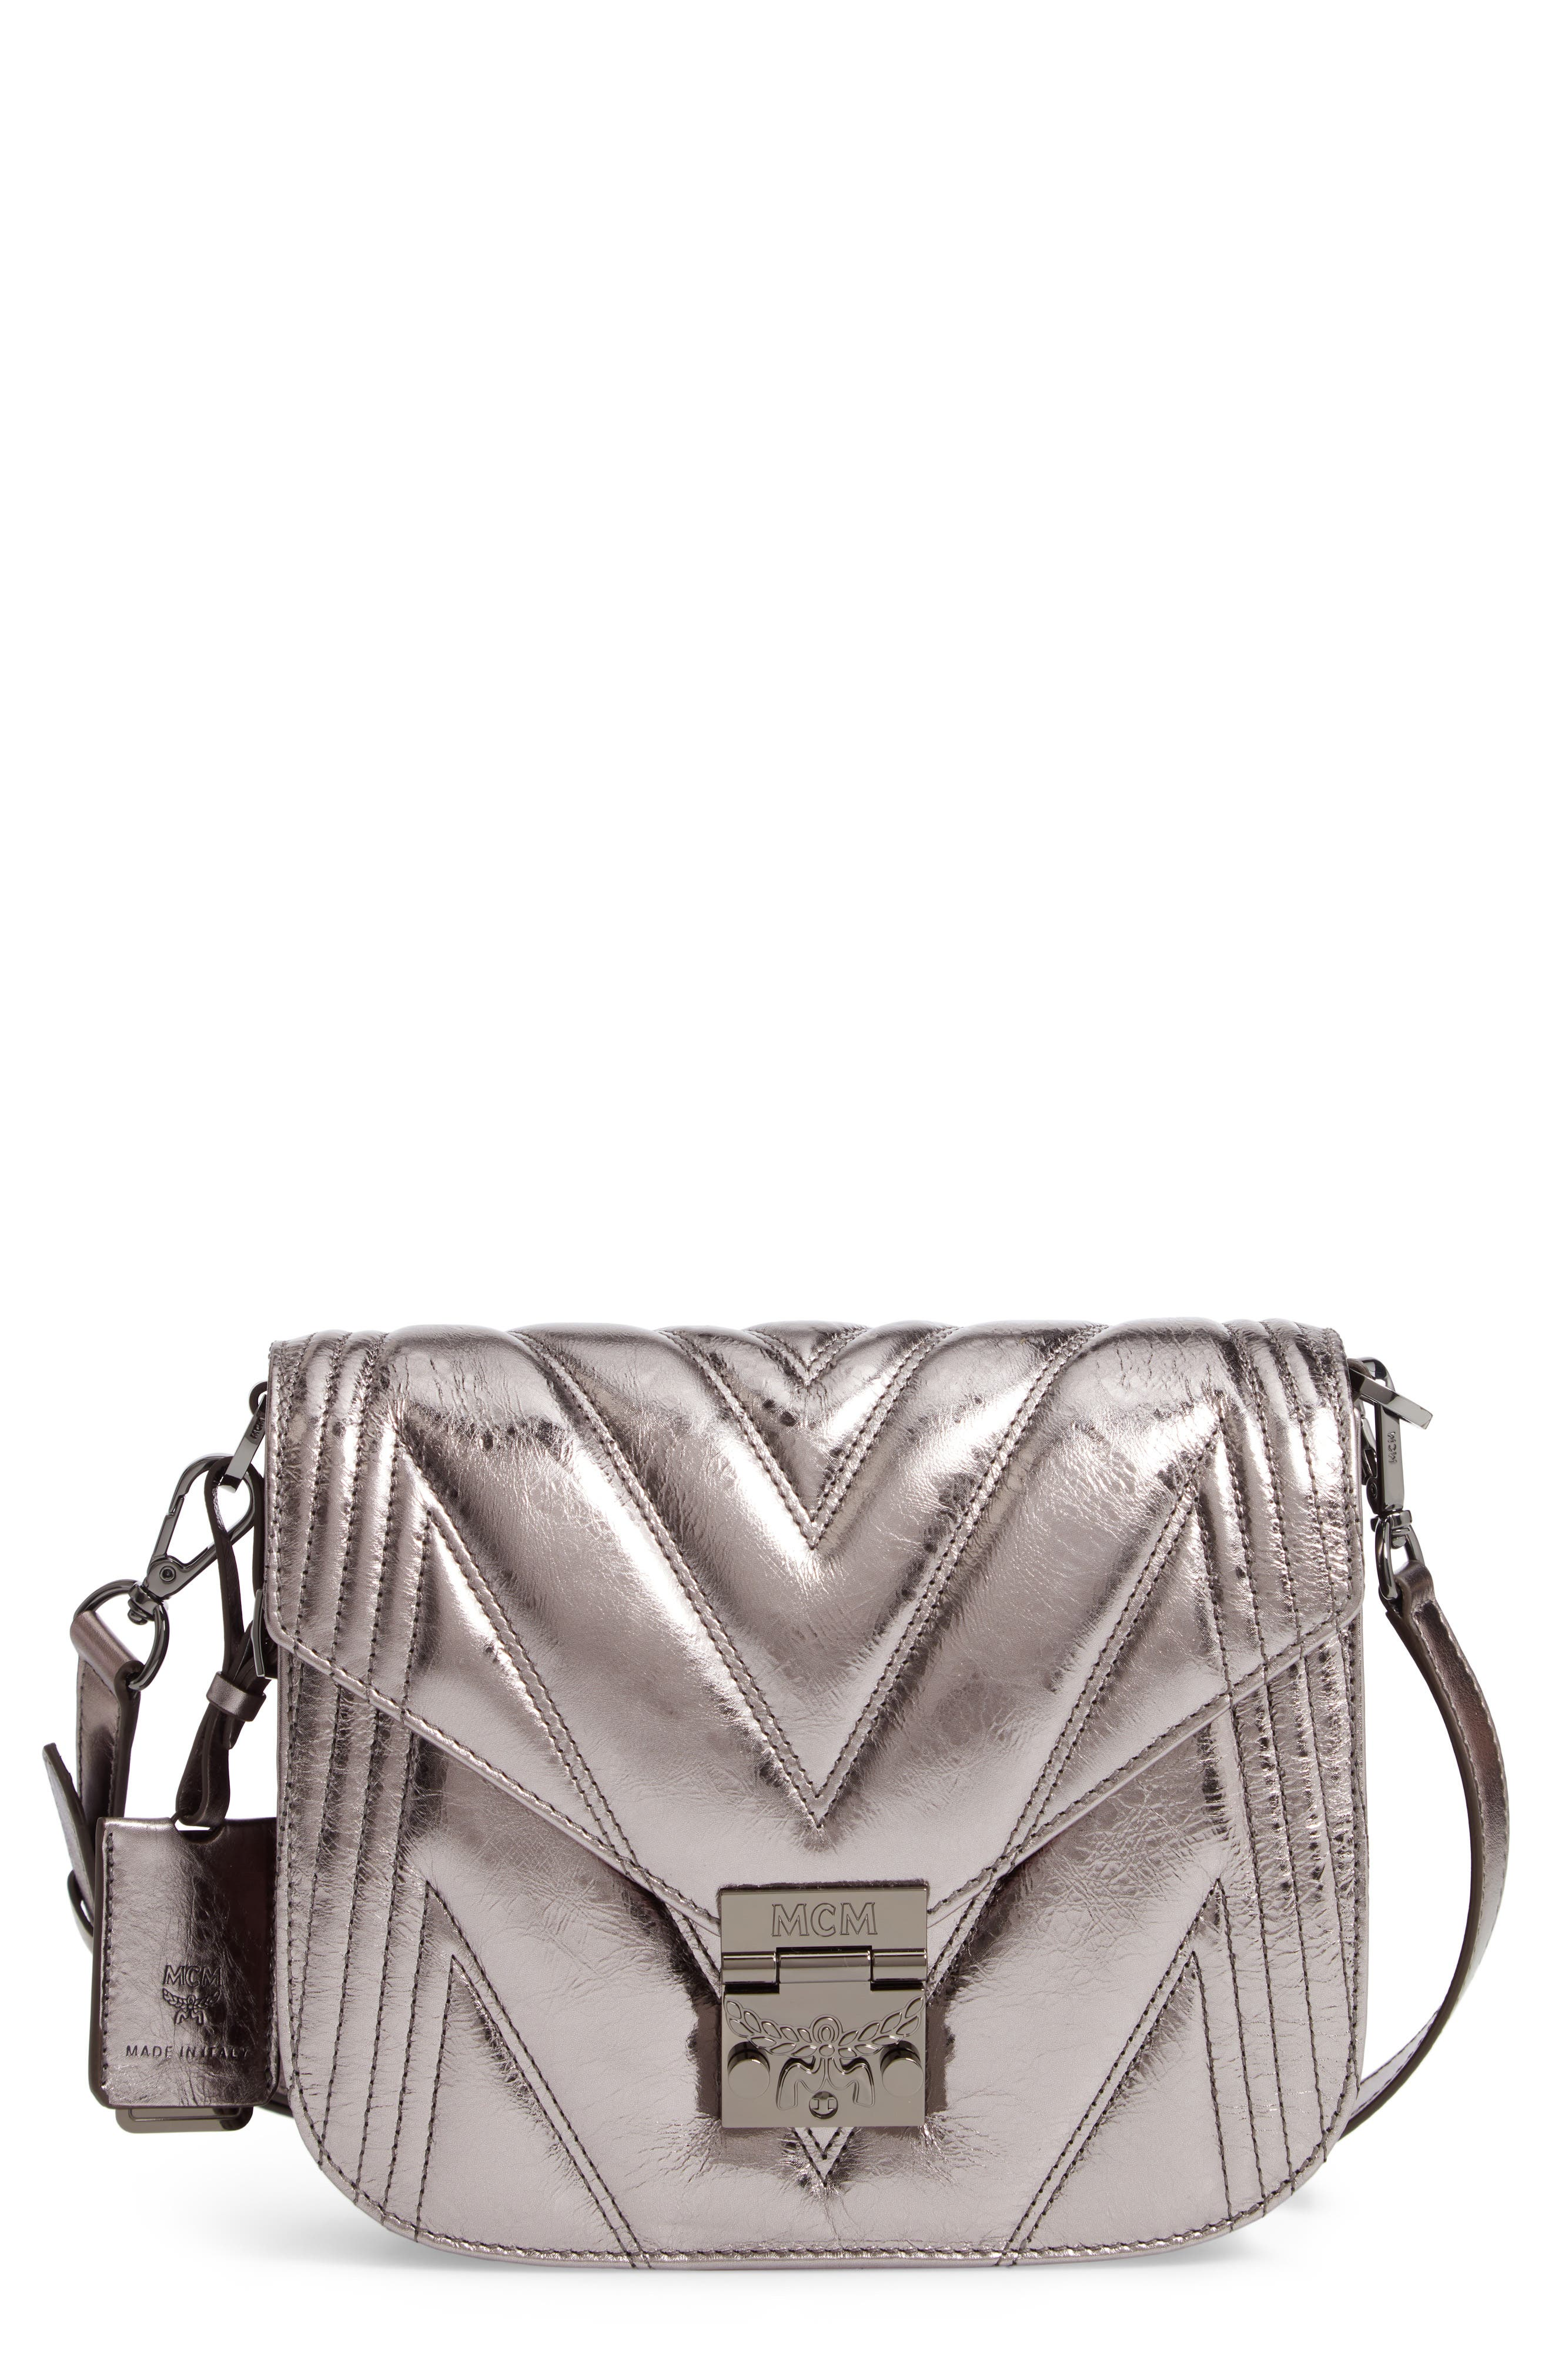 Patricia Quilted Metallic Leather Saddle Bag,                             Main thumbnail 1, color,                             040